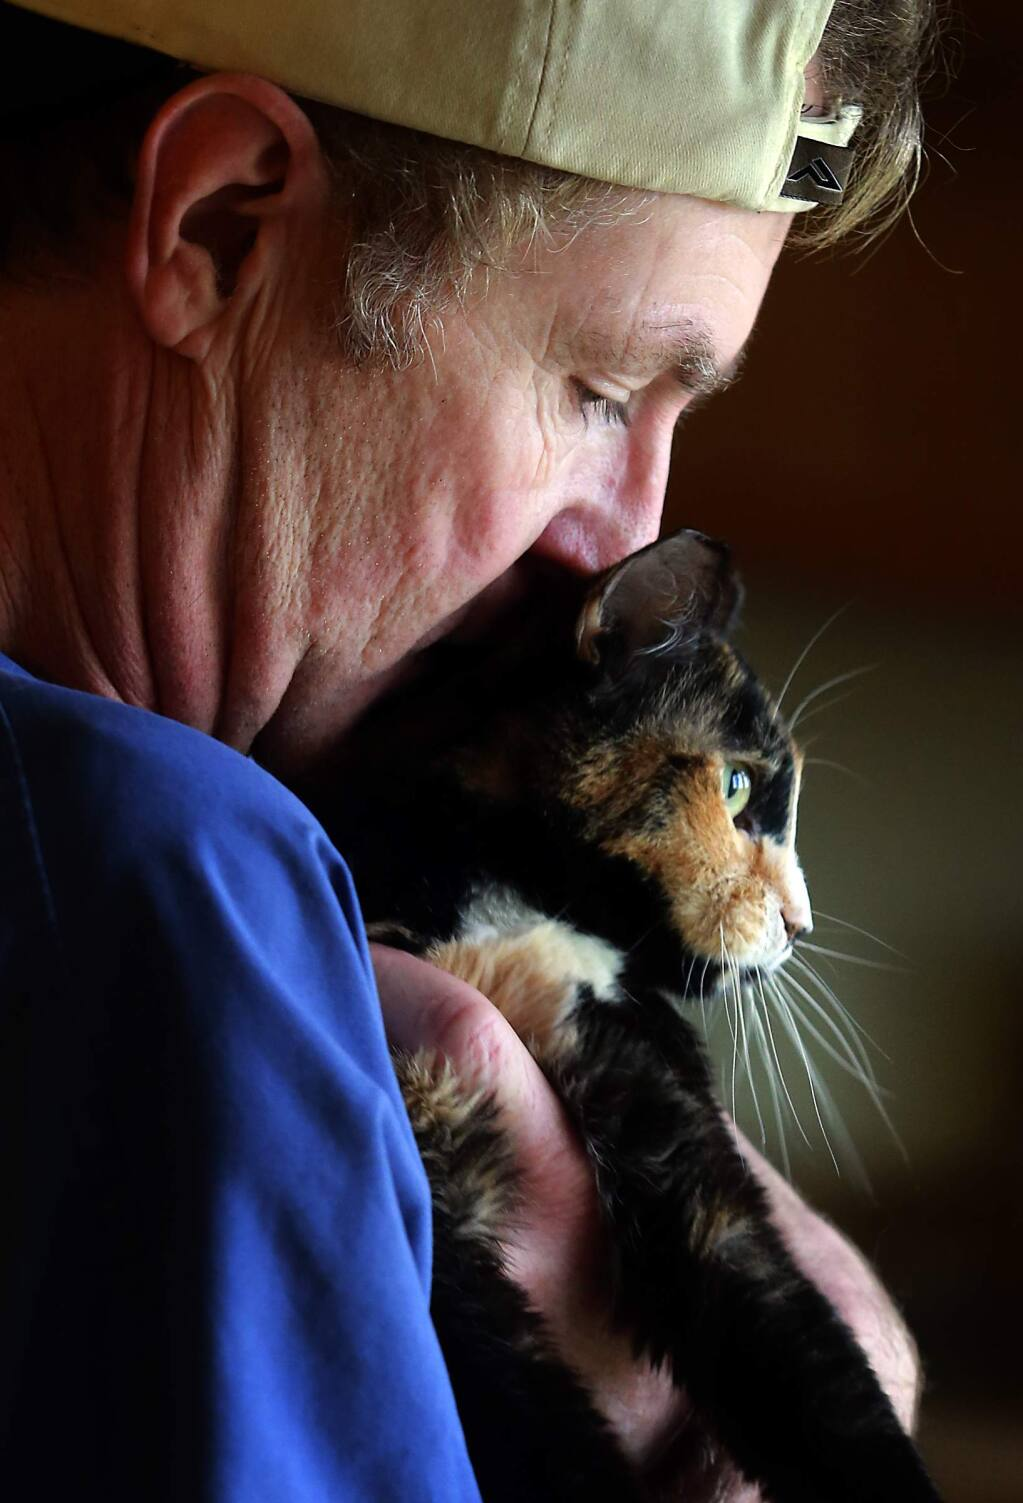 PHOTO: 2 by JOHN BURGESS / The Press Democrat -Darryl Roberts snuggles with Pumpkin, who is afflicted with cerebellar hypoplasia and has difficulties walking. Roberts founded SNAP Cats for abused, injured and disabled cats out of his Dry Creek apartment.